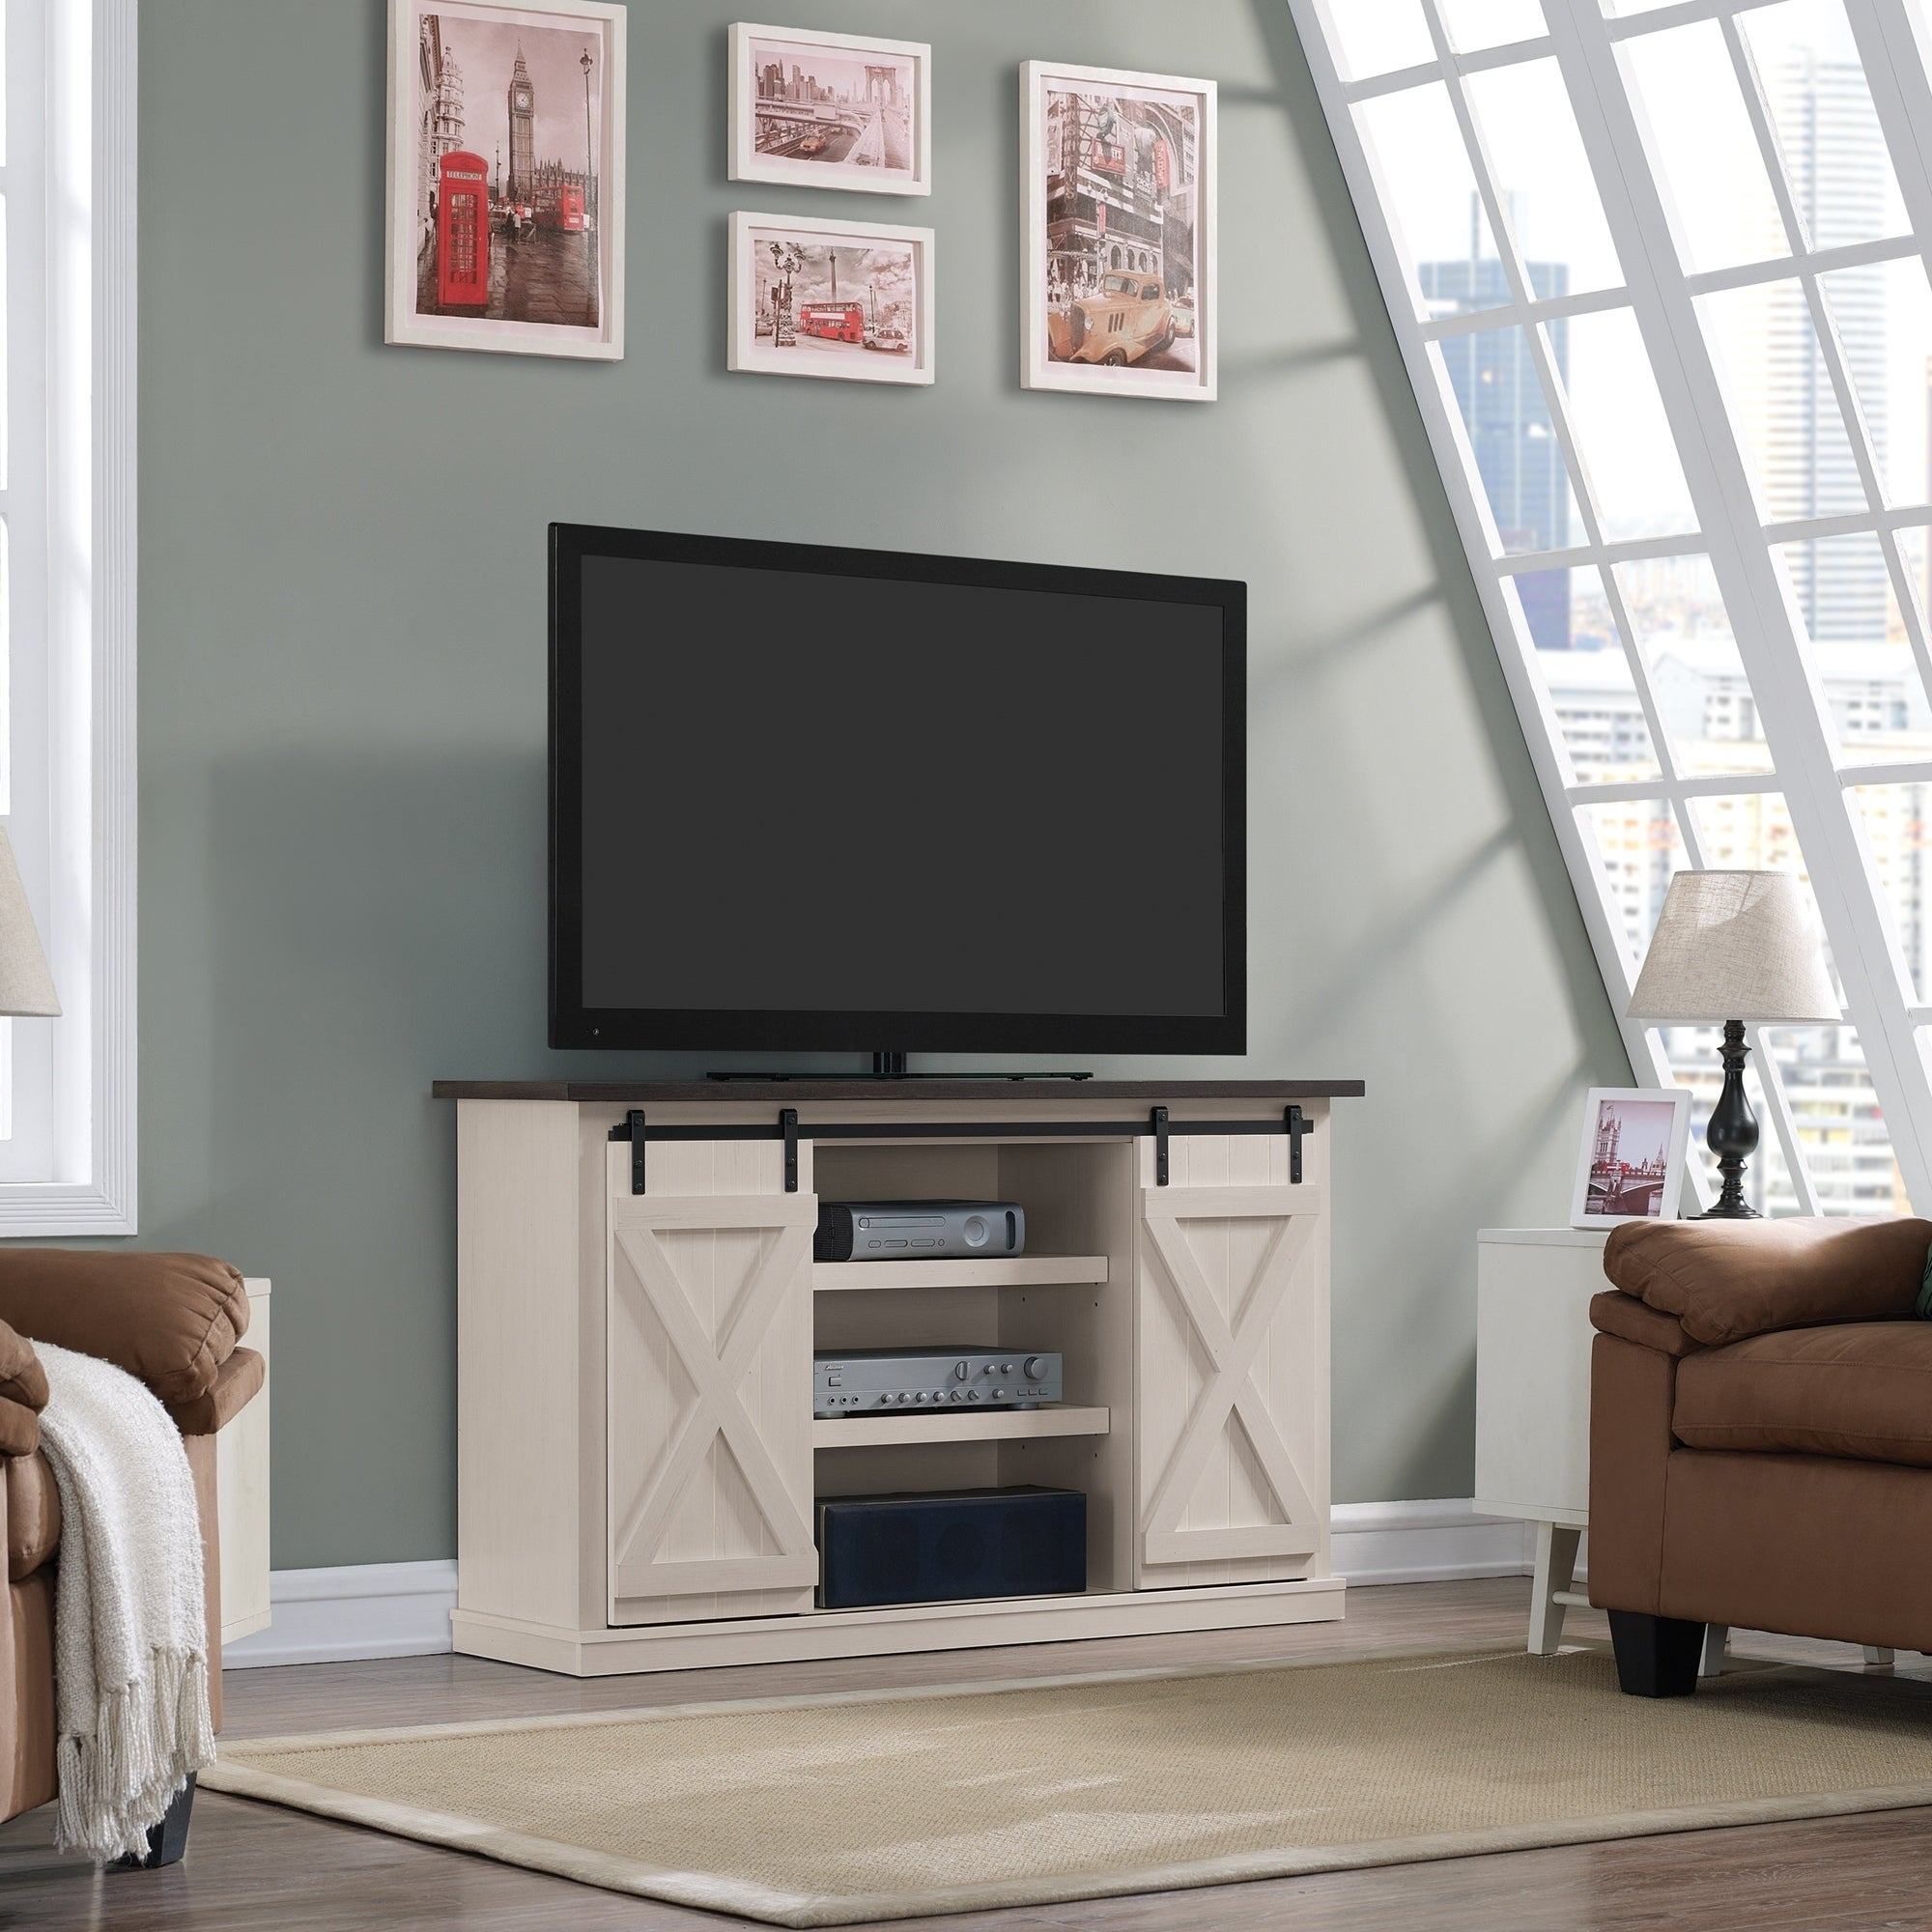 Cottonwood Two Tone TV Stand For TVs Up To 60 Inches, Old Wood White